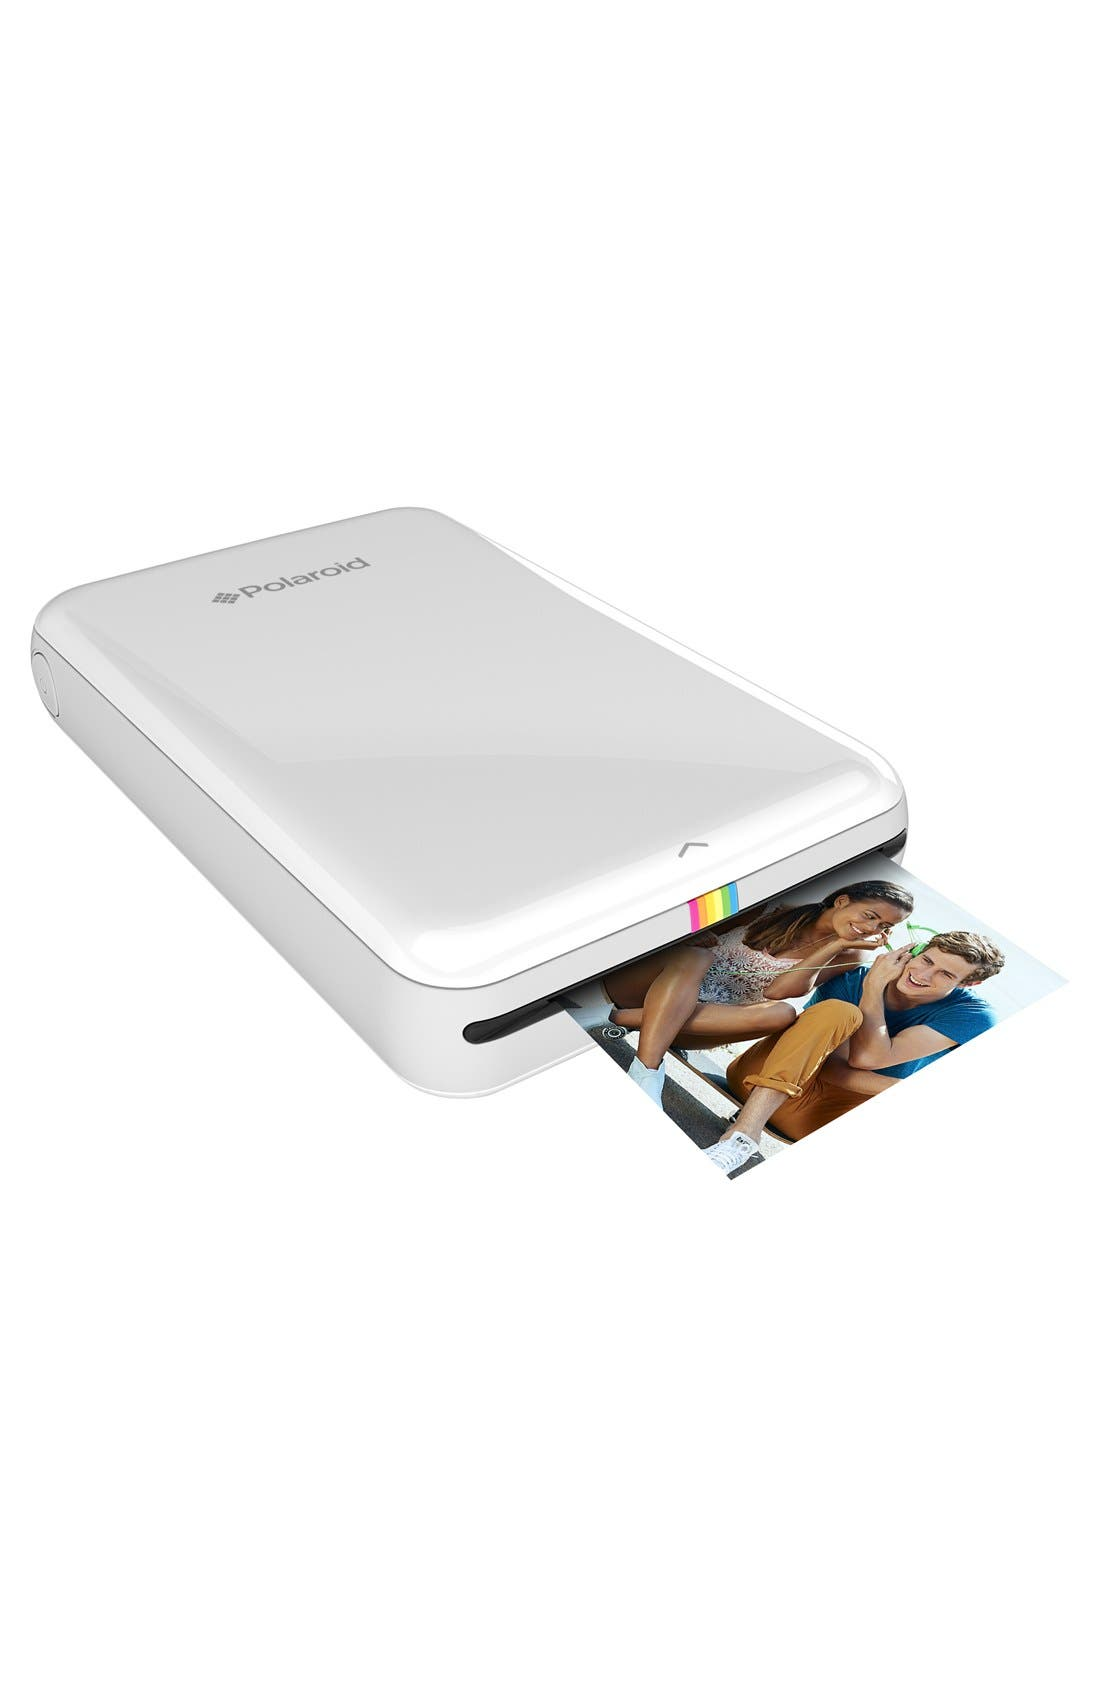 'Zip' Mobile Instant Photo Printer,                             Main thumbnail 1, color,                             100